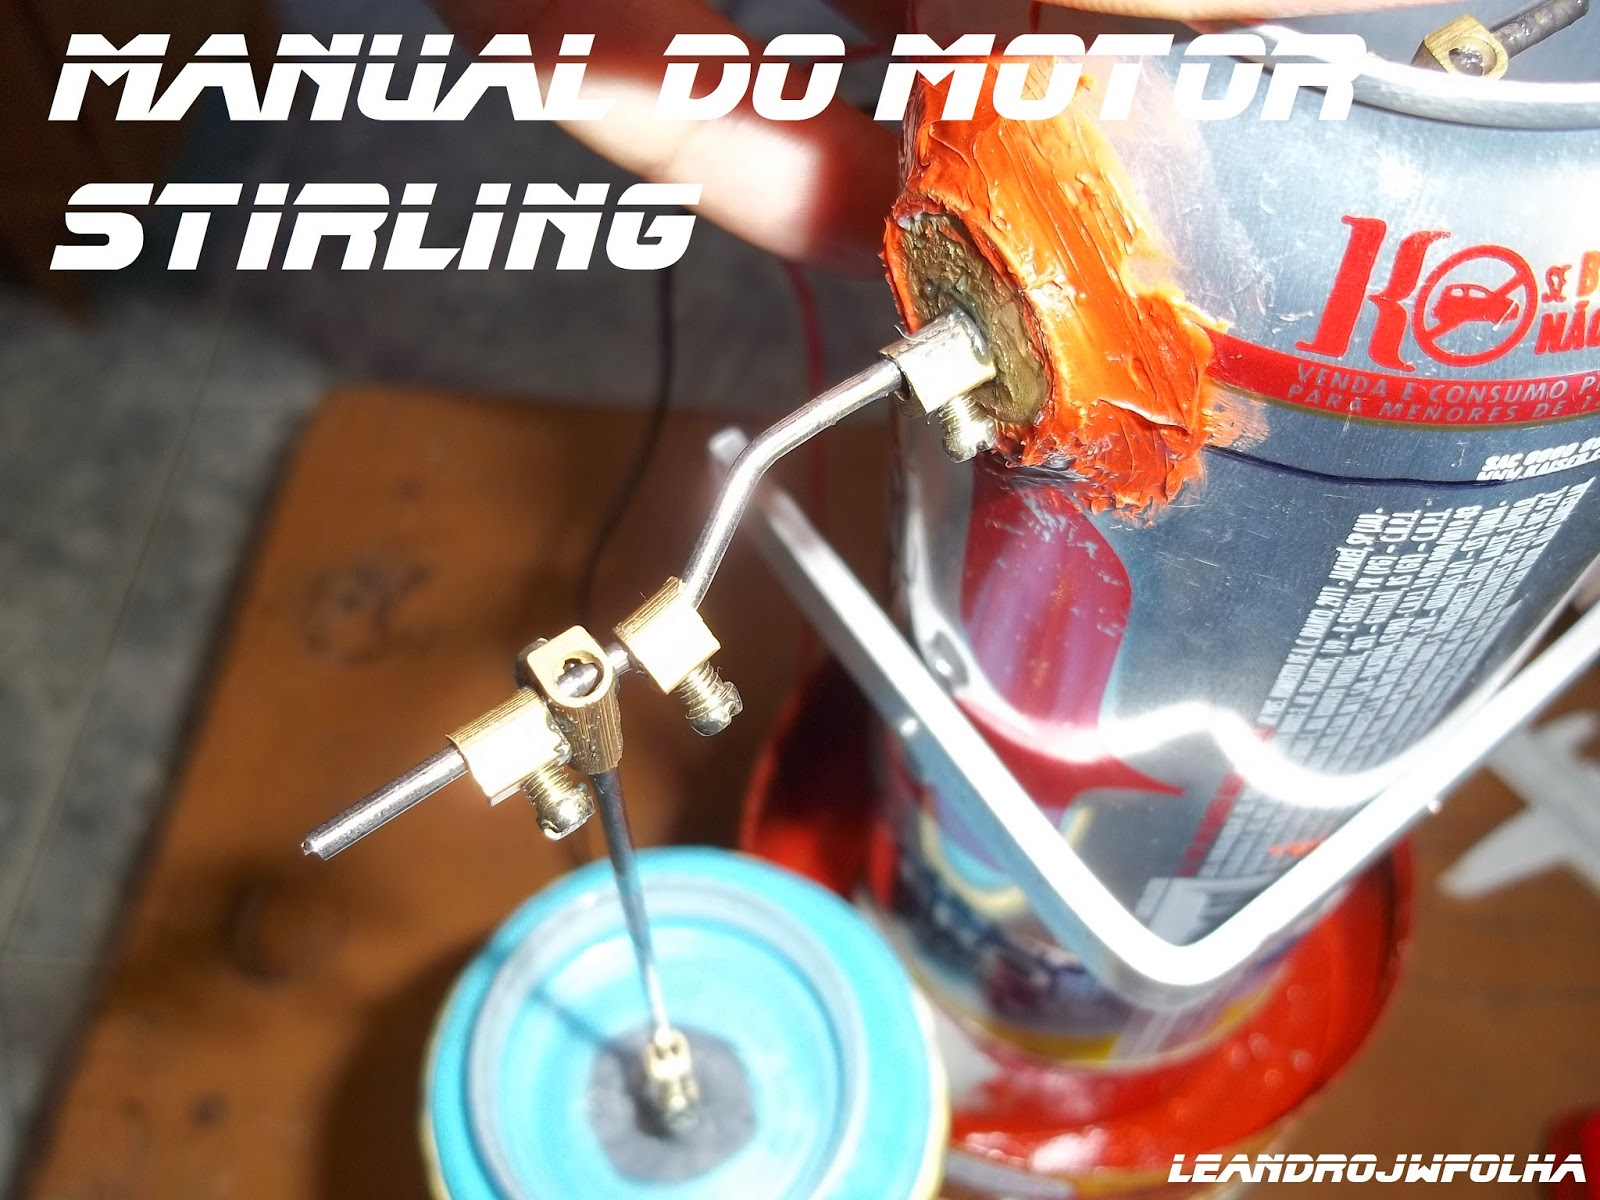 Manual do motor Stirling, 14 mm é o curso total do pistão de trabalho